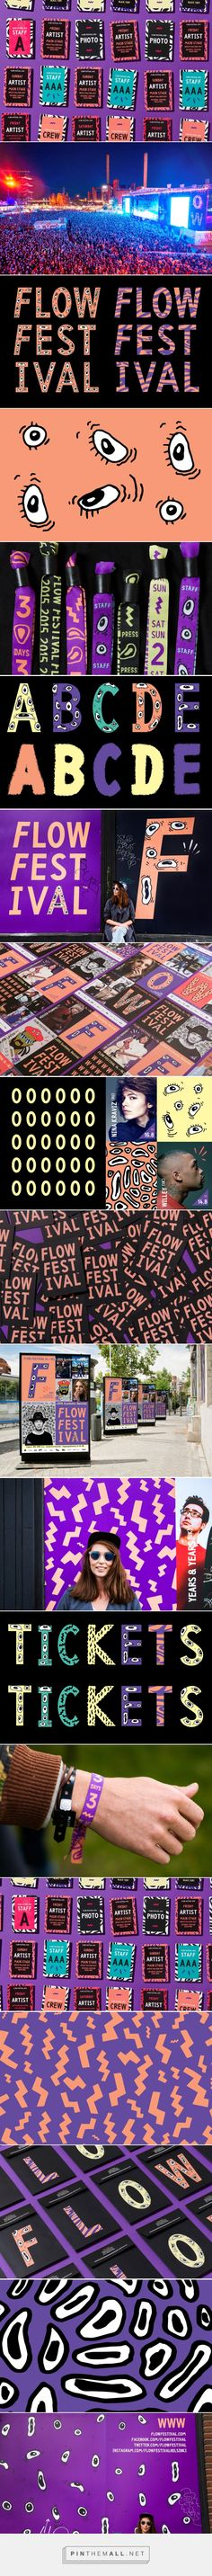 New Brand Identity for Flow Festival 2015 by Bond — BP&O - created via https://pinthemall.net